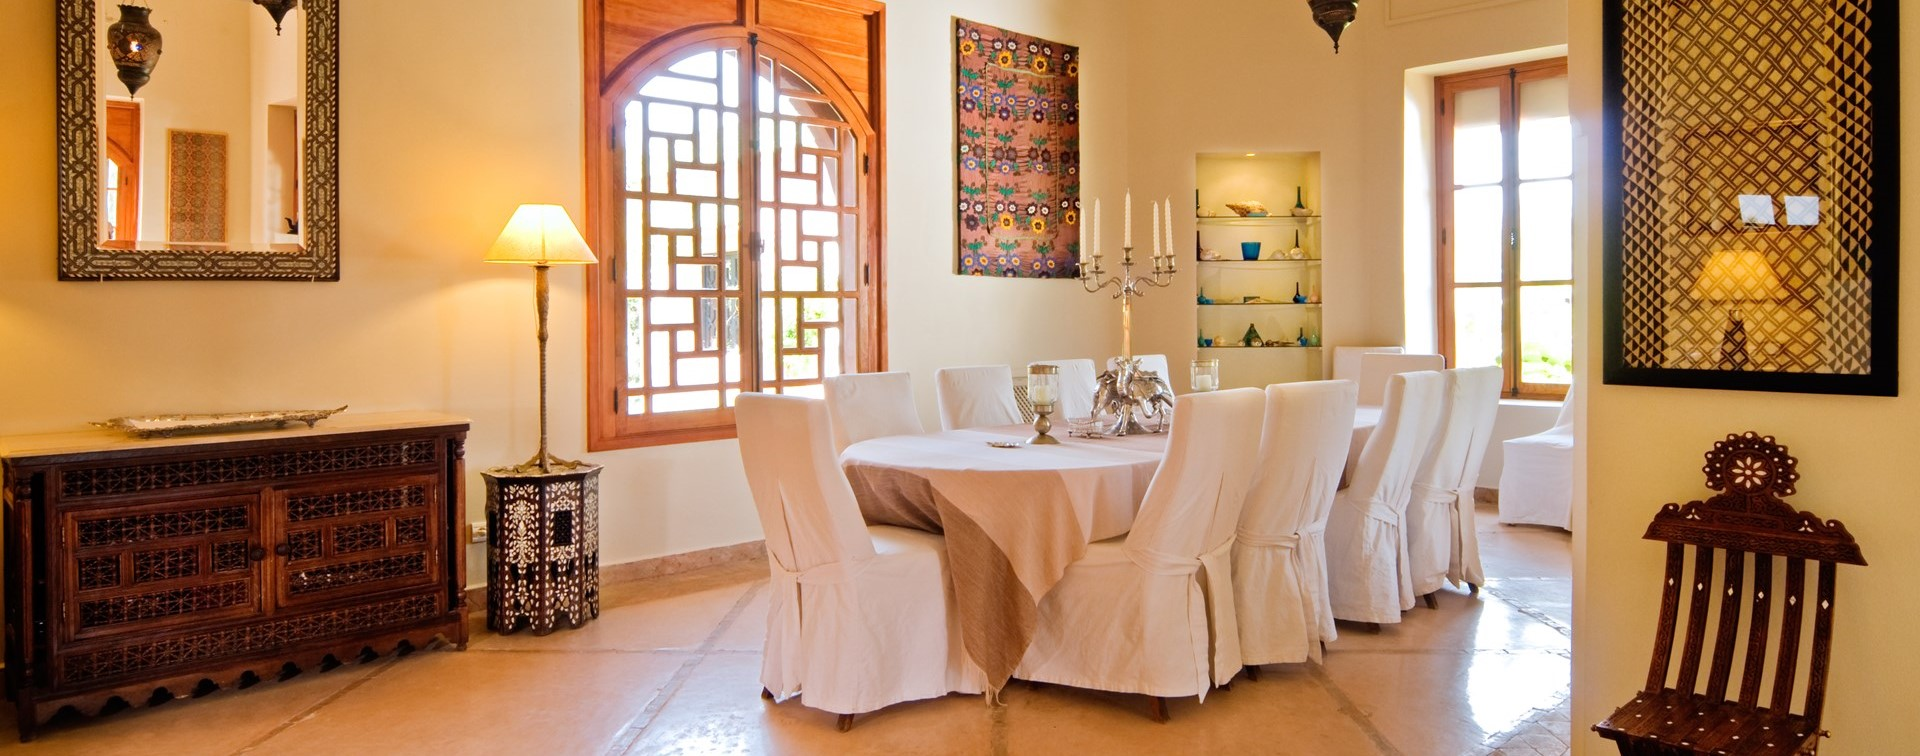 villa-alexandra-marrakech-dining-room